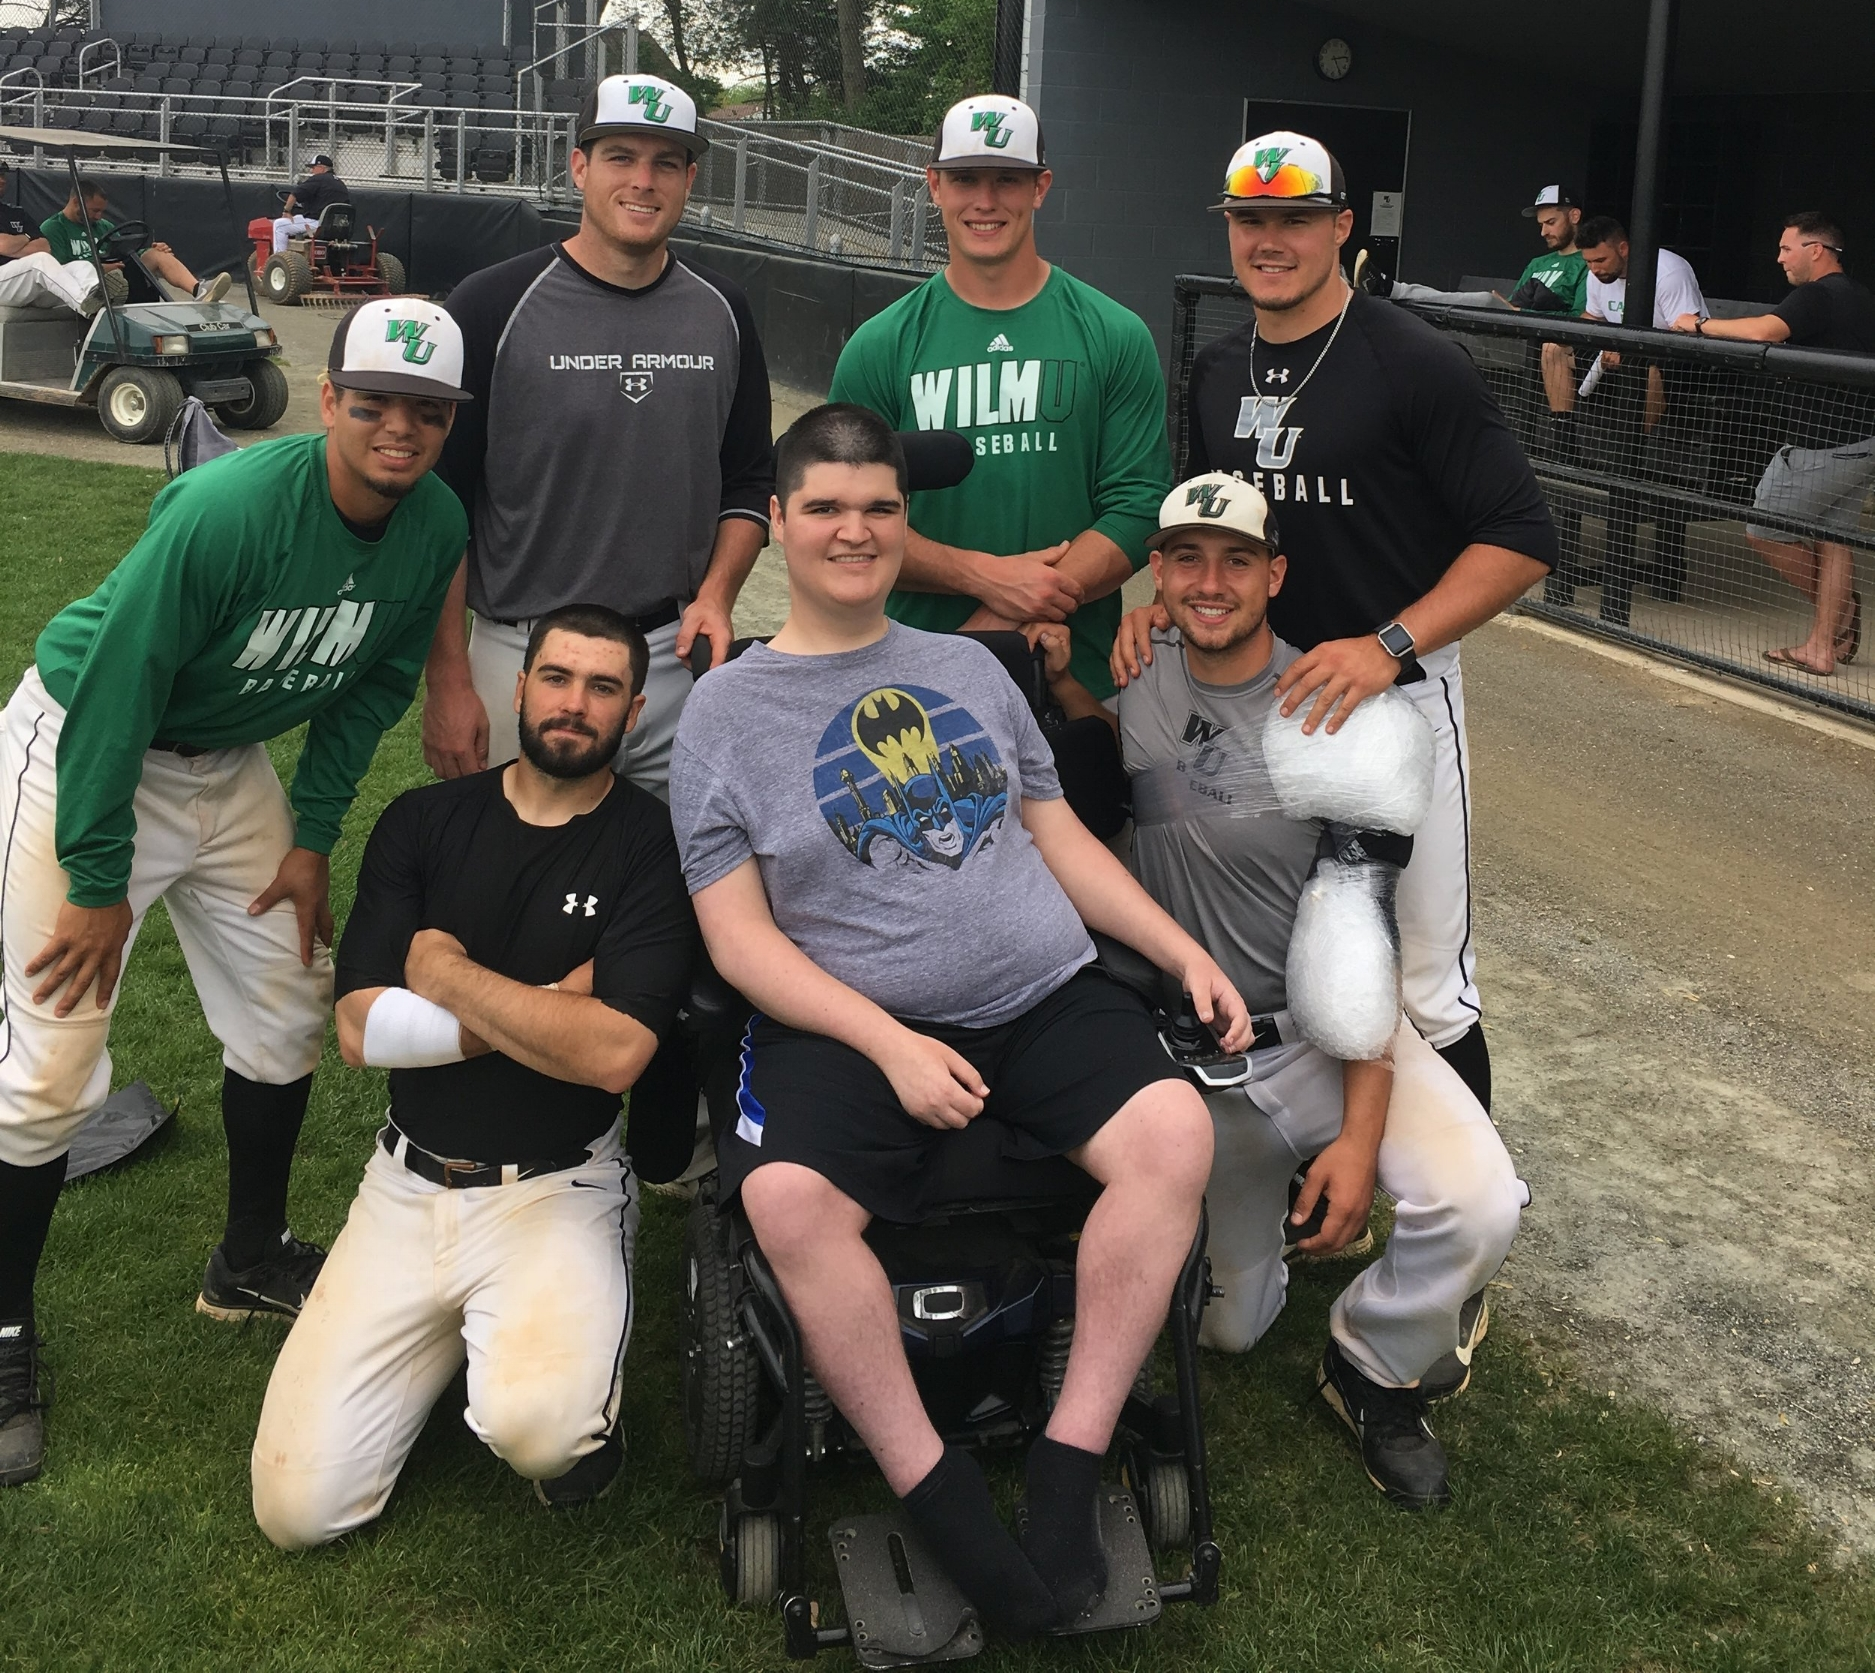 Muscle Champion, Mike Smith, and the WilmU Baseball Team celebrate as they advance to the 2018 CACC Tournament!